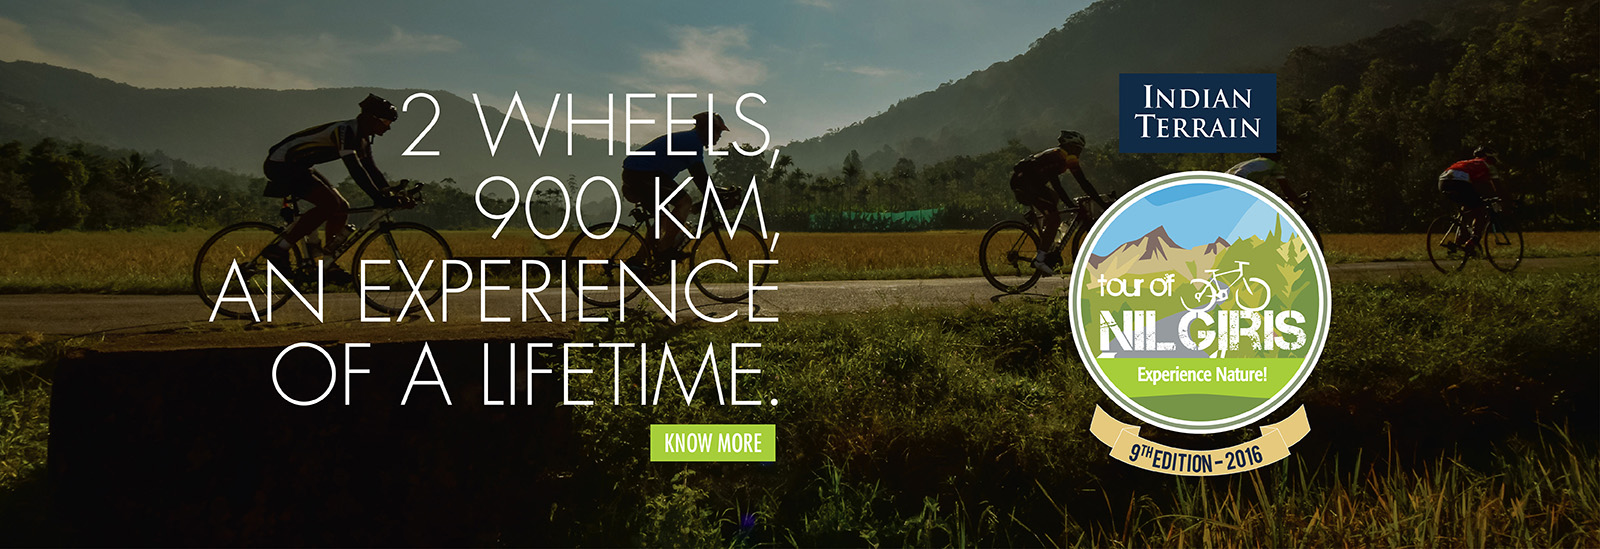 2 Wheels, 900 Km, An Experince of a Lifetime